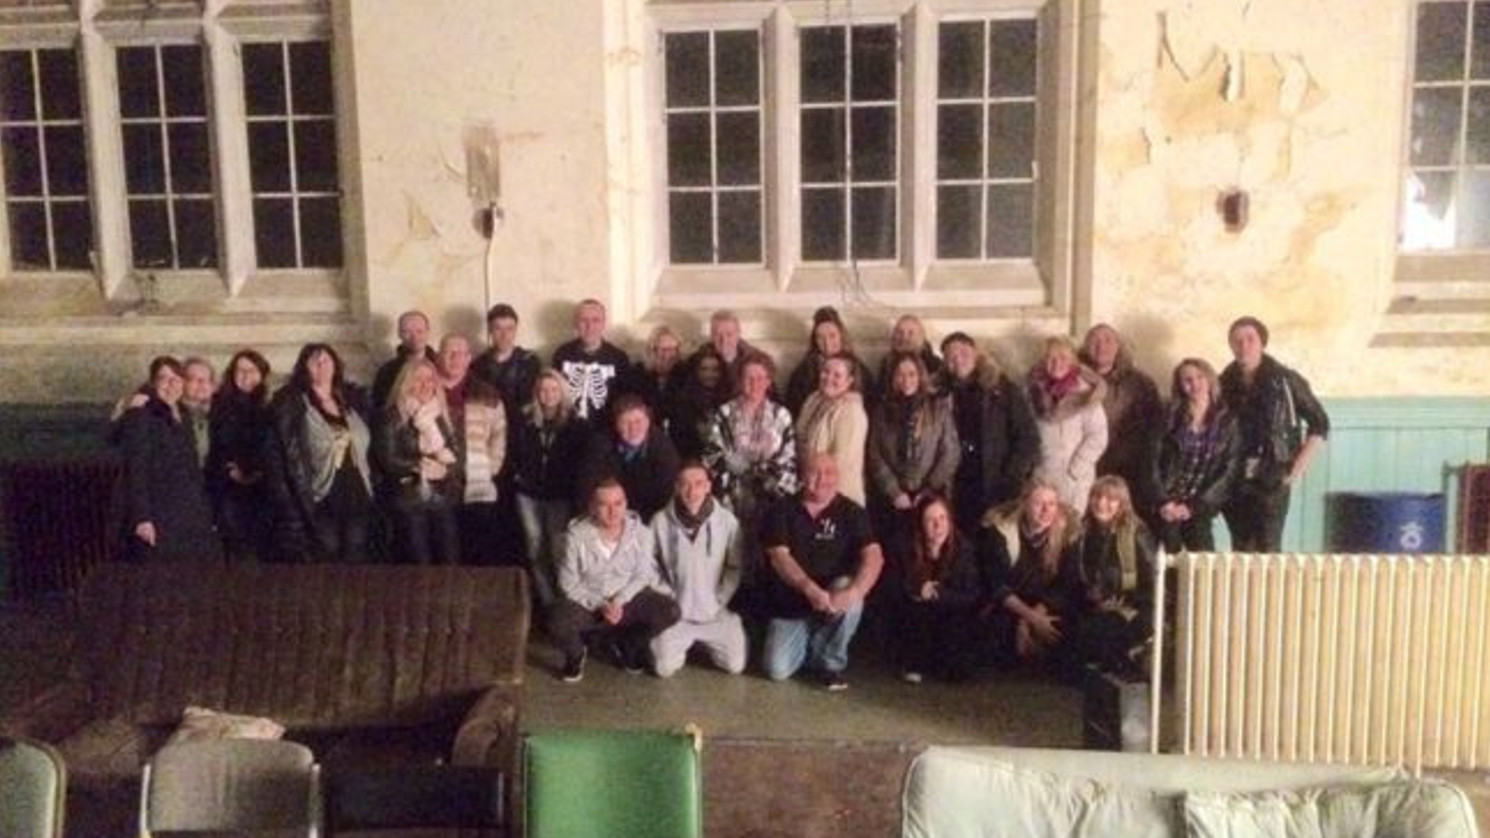 They Took This Group Photo At An Abandoned Asylum... But One Detail Made Their Blood Run Cold